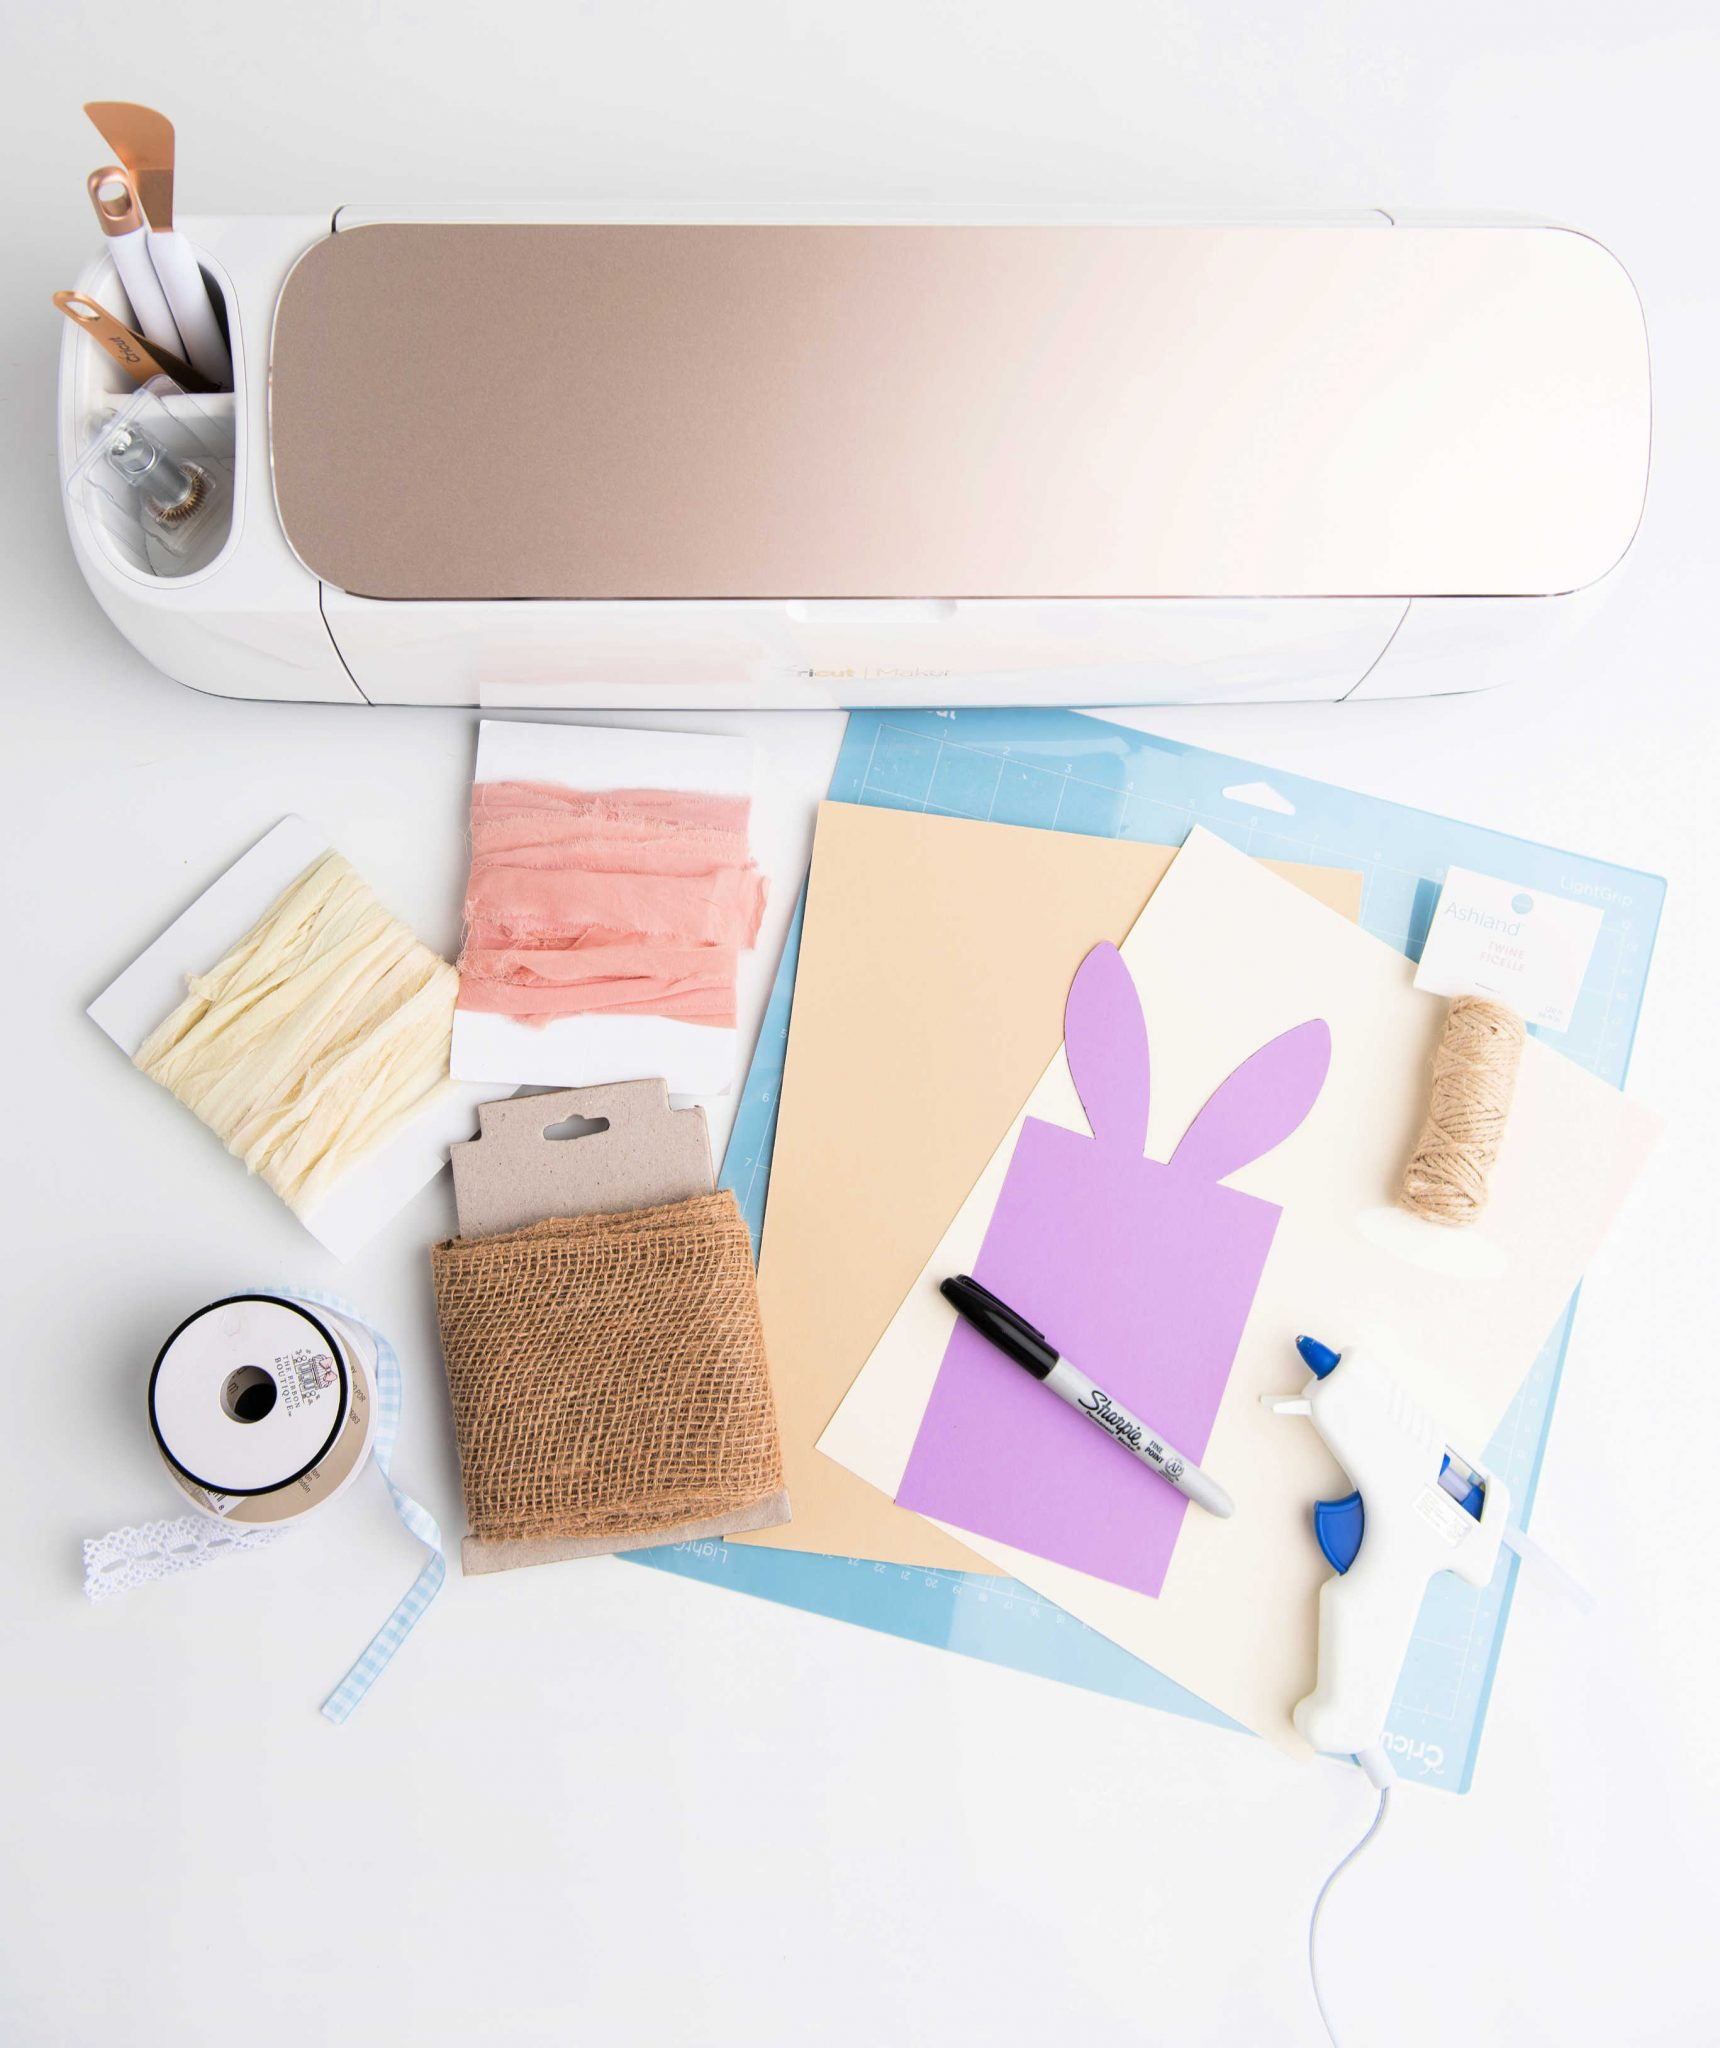 Cricut Maker, craft supplies for making DIY burlap utensil holders for spring or Easter table settings, bunny template...- Cricut Crafts Tutorial at DearCreatives.com